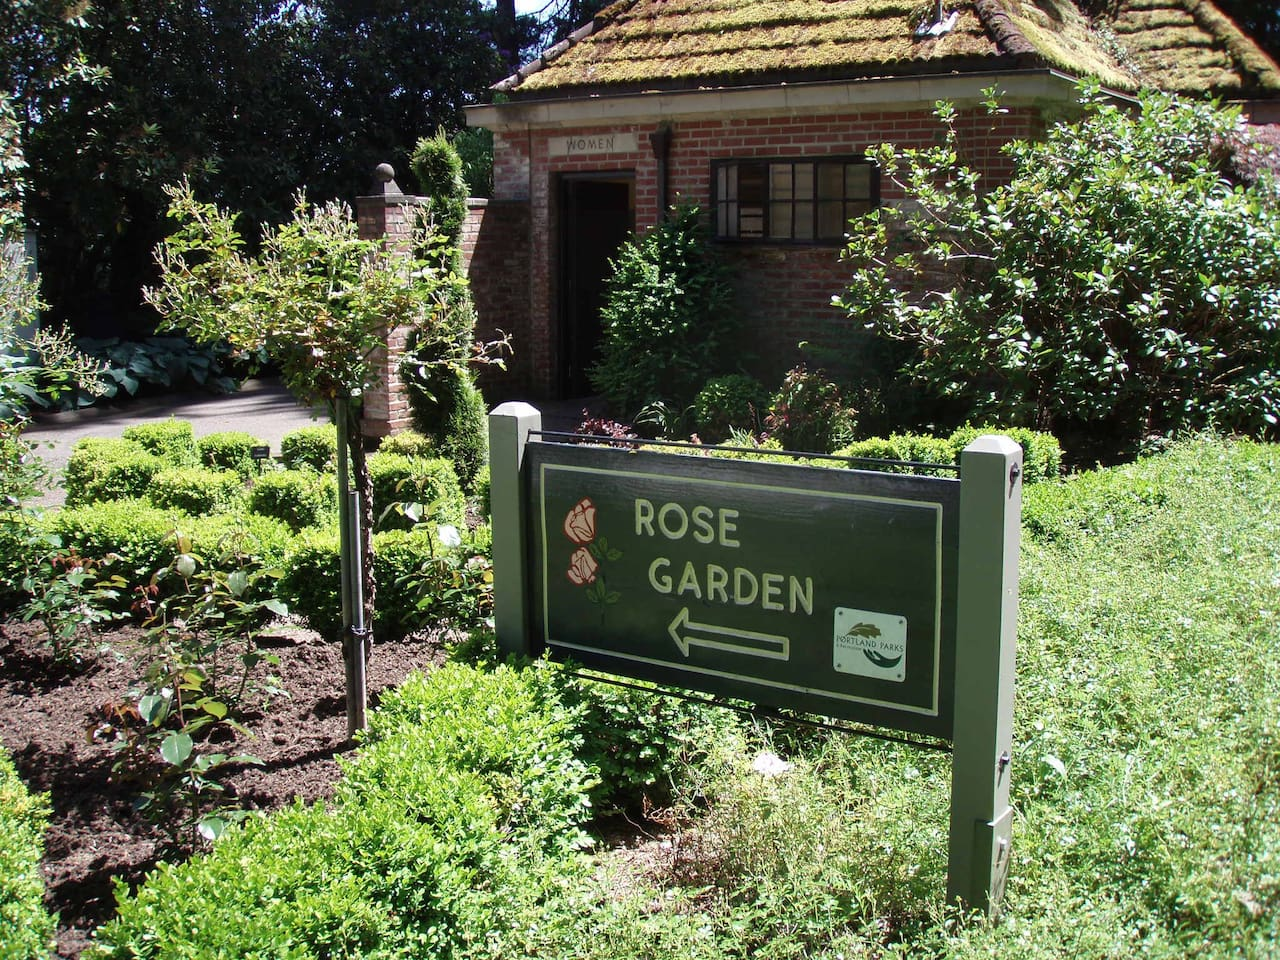 We are located just around the corner from the world famous Portland Rose Gardens!